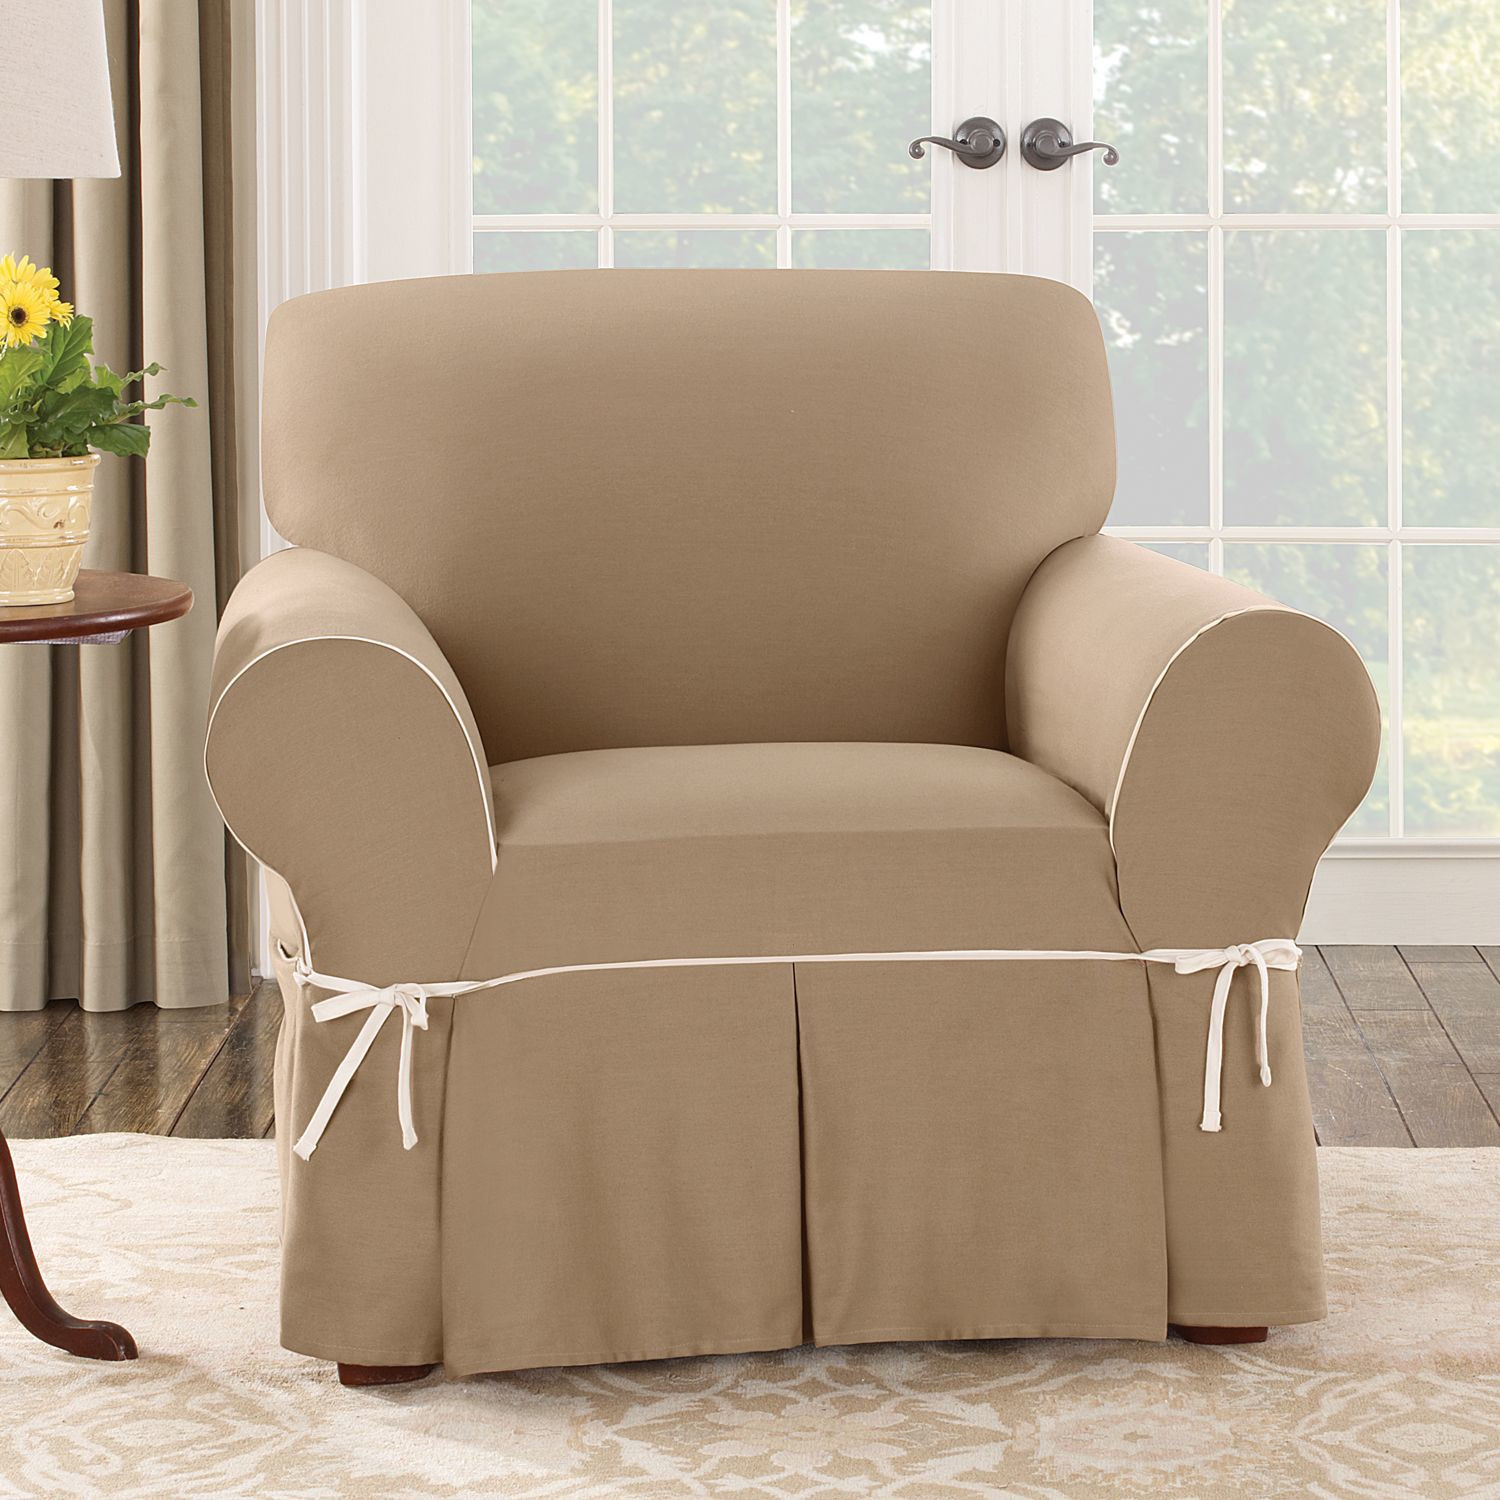 Slip Cover Chairs Simple Barrel Chair Slipcovers Homesfeed